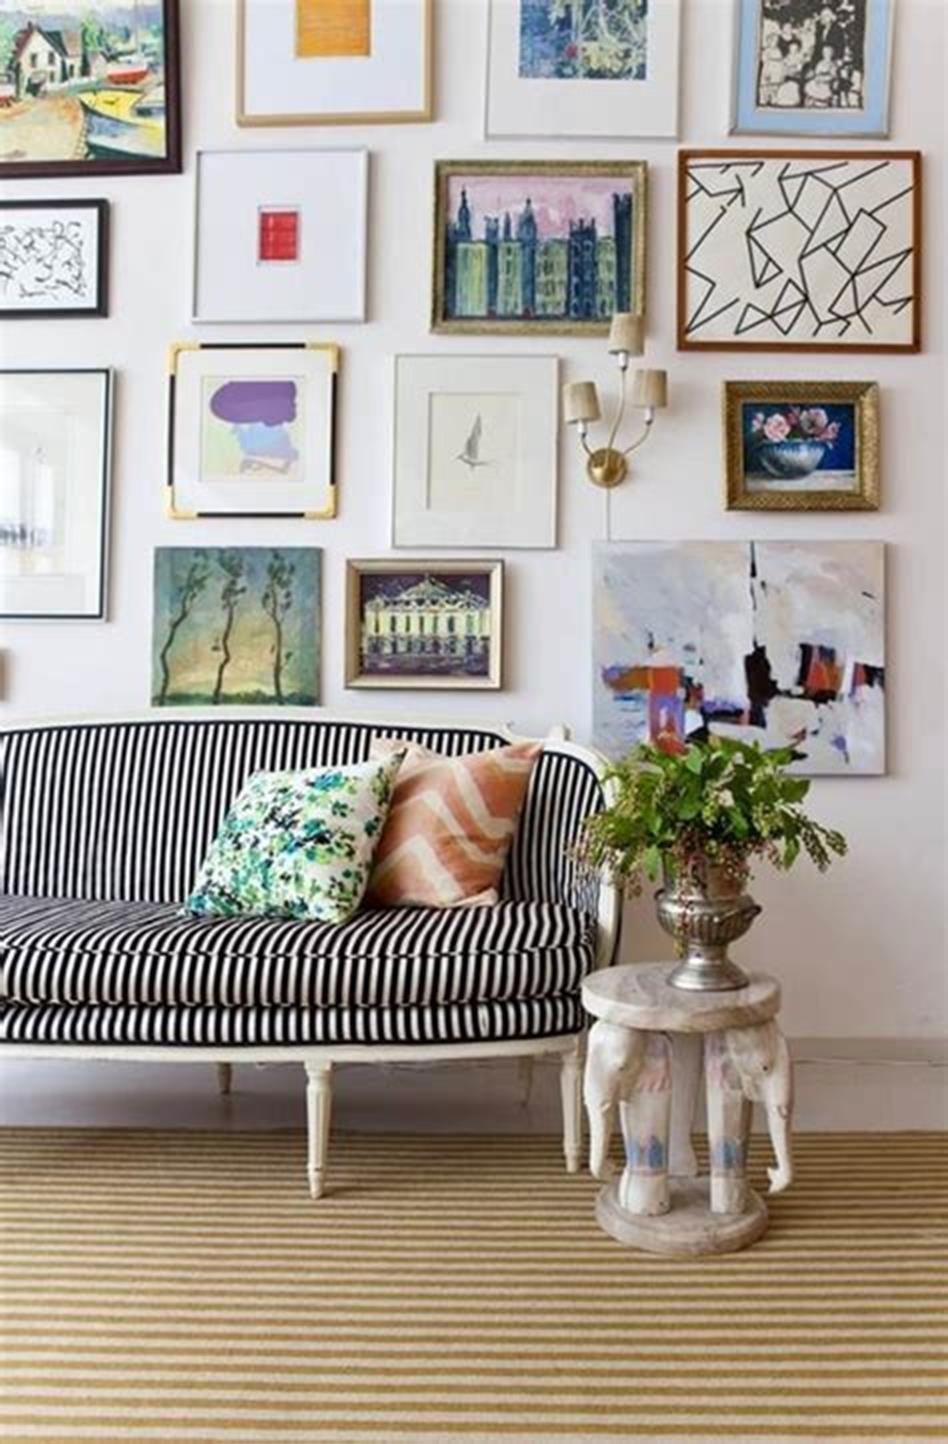 45 Simple Living Room Decorating Ideas On a Budget 2019 ...